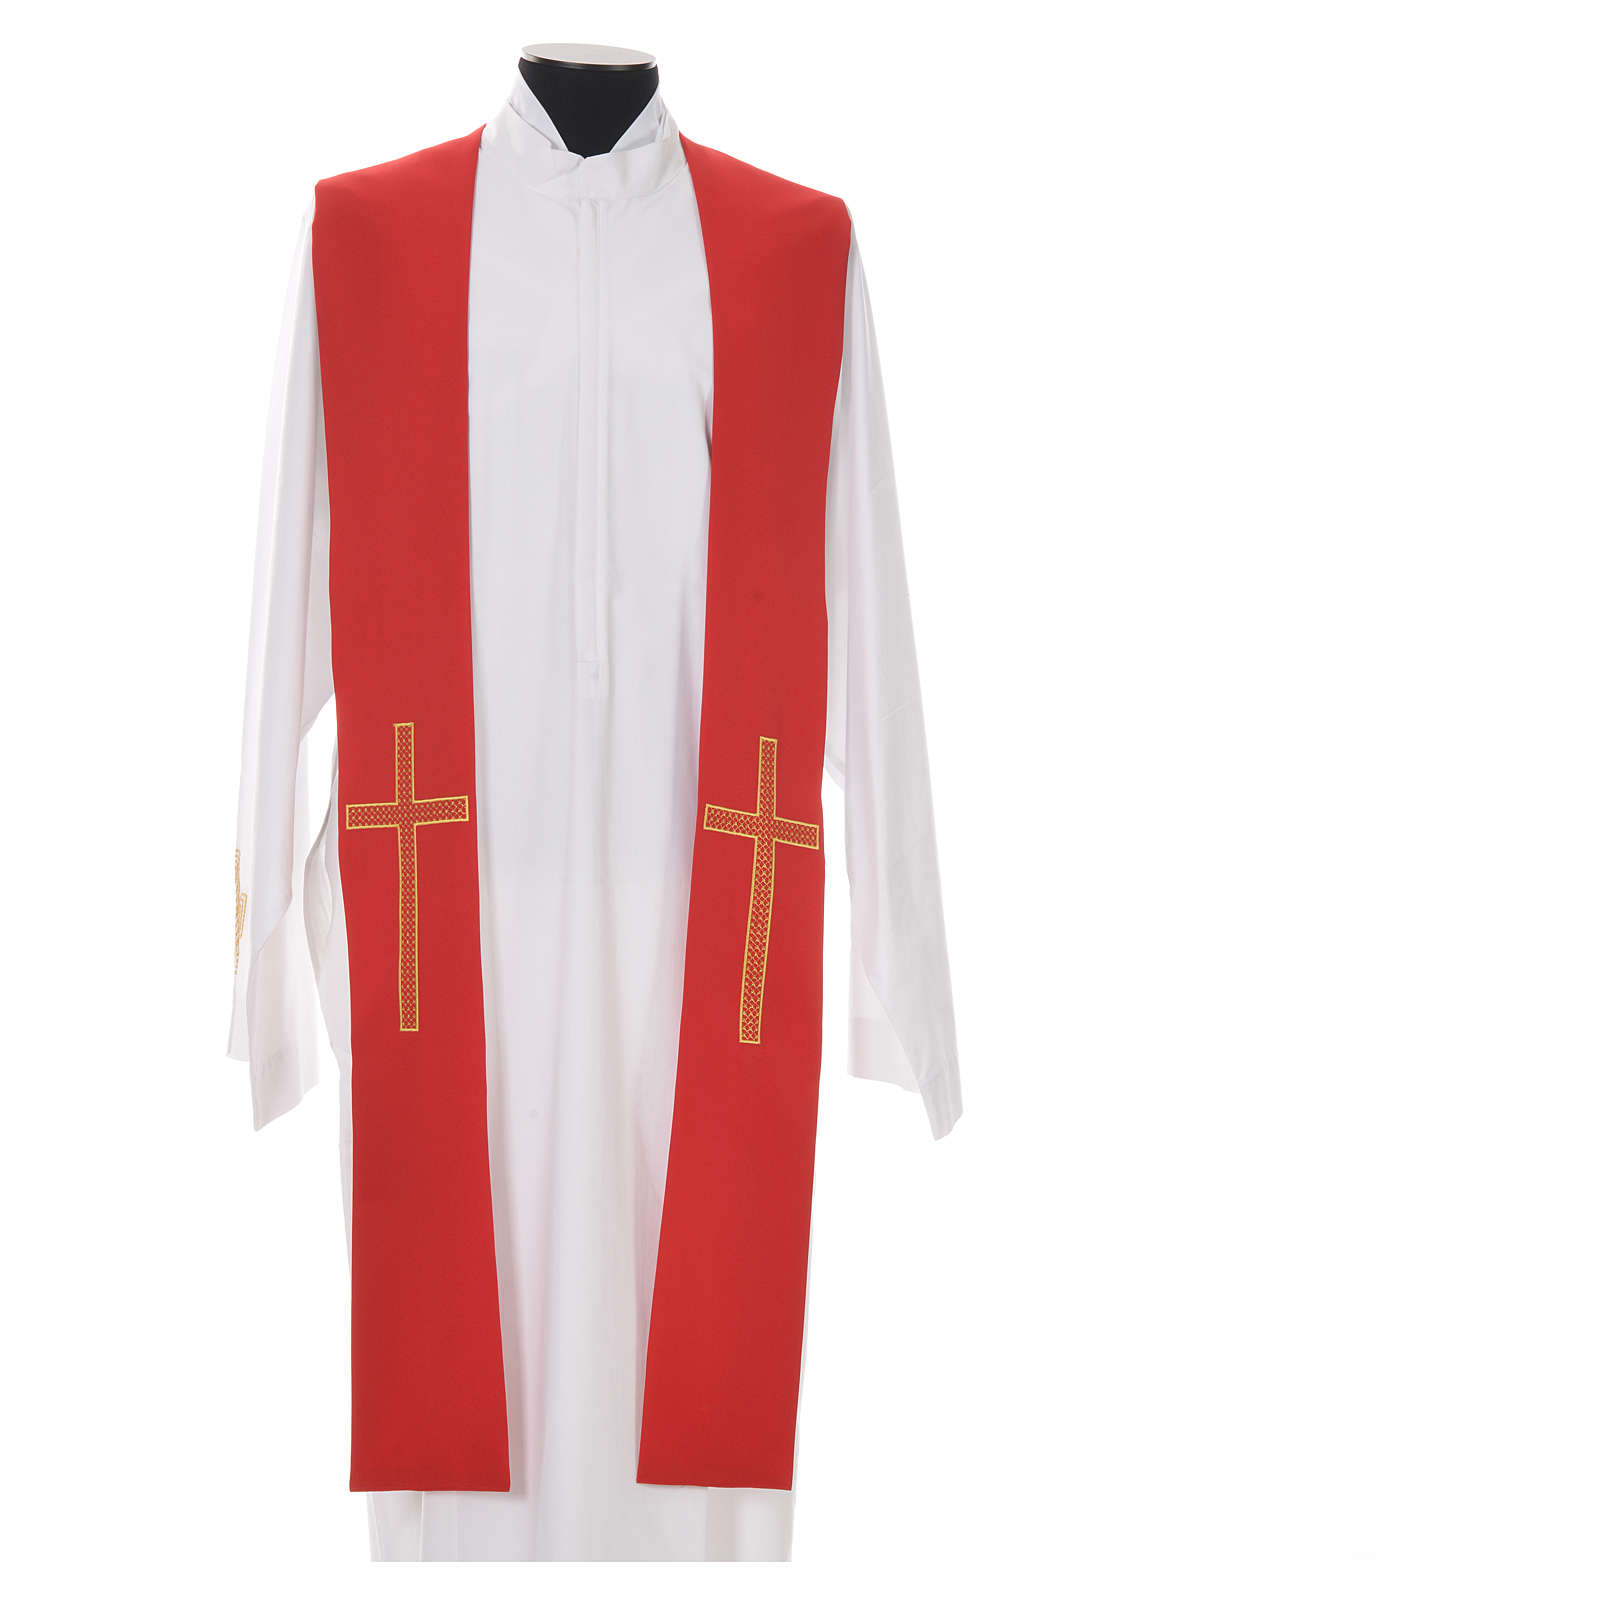 Stole in 100% polyester, crosses 4